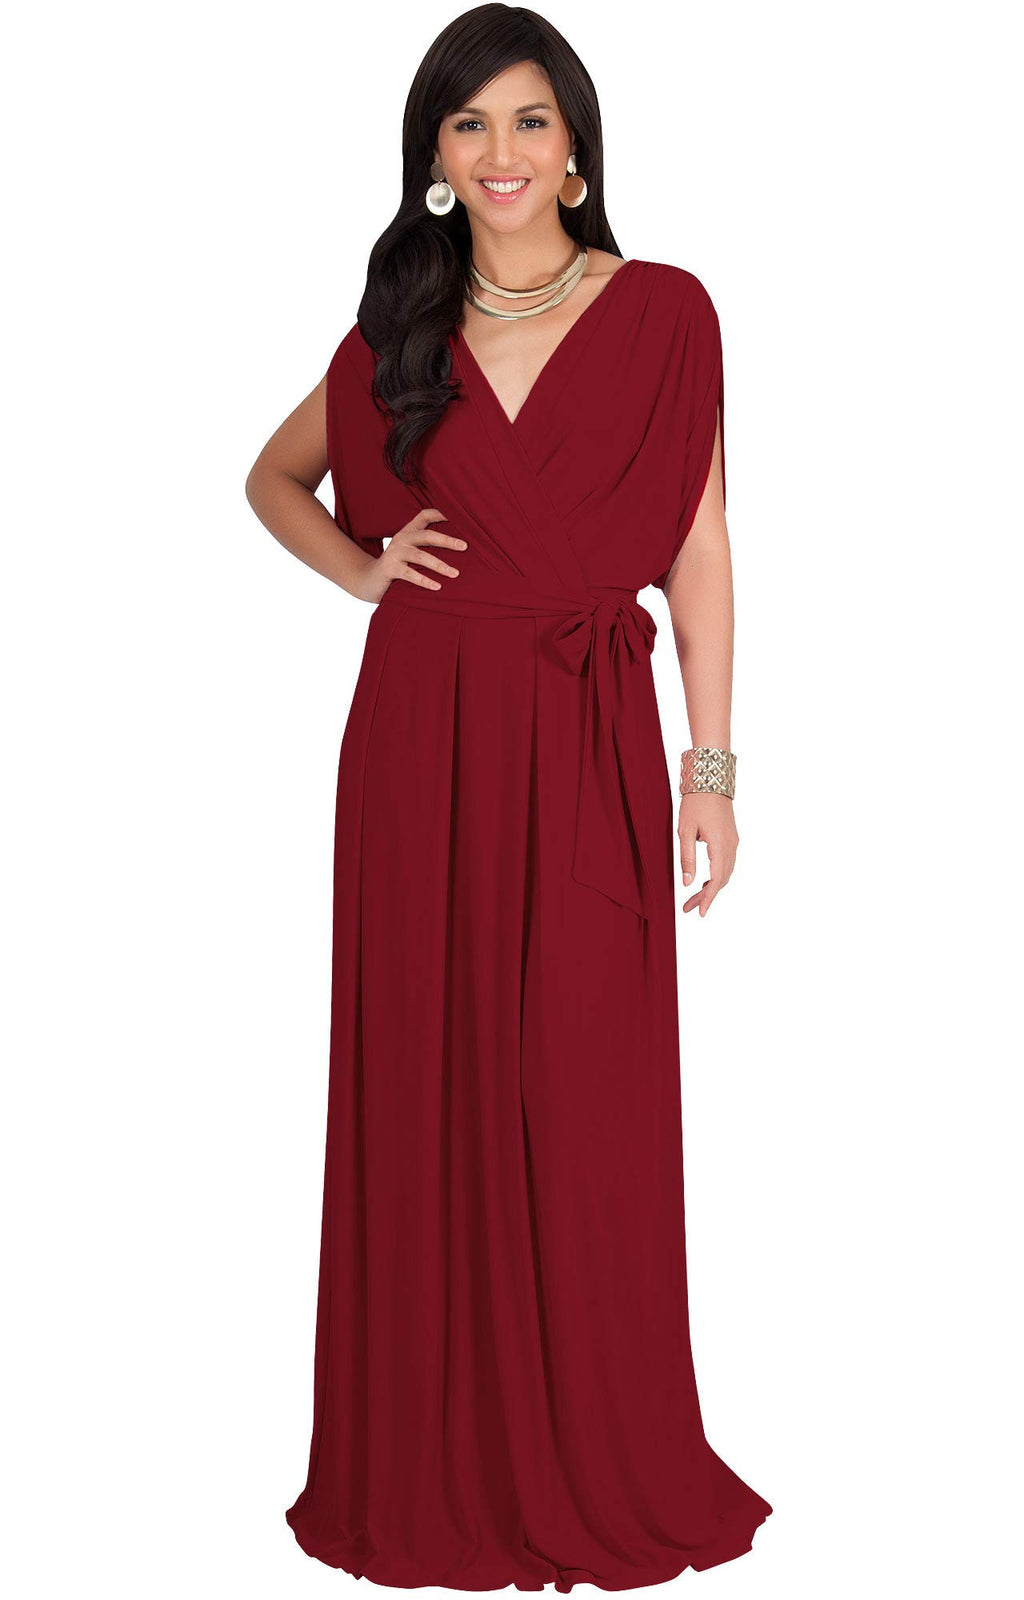 Short Sleeve Cocktail  V-Neck Casual Maxi Dress plus sized